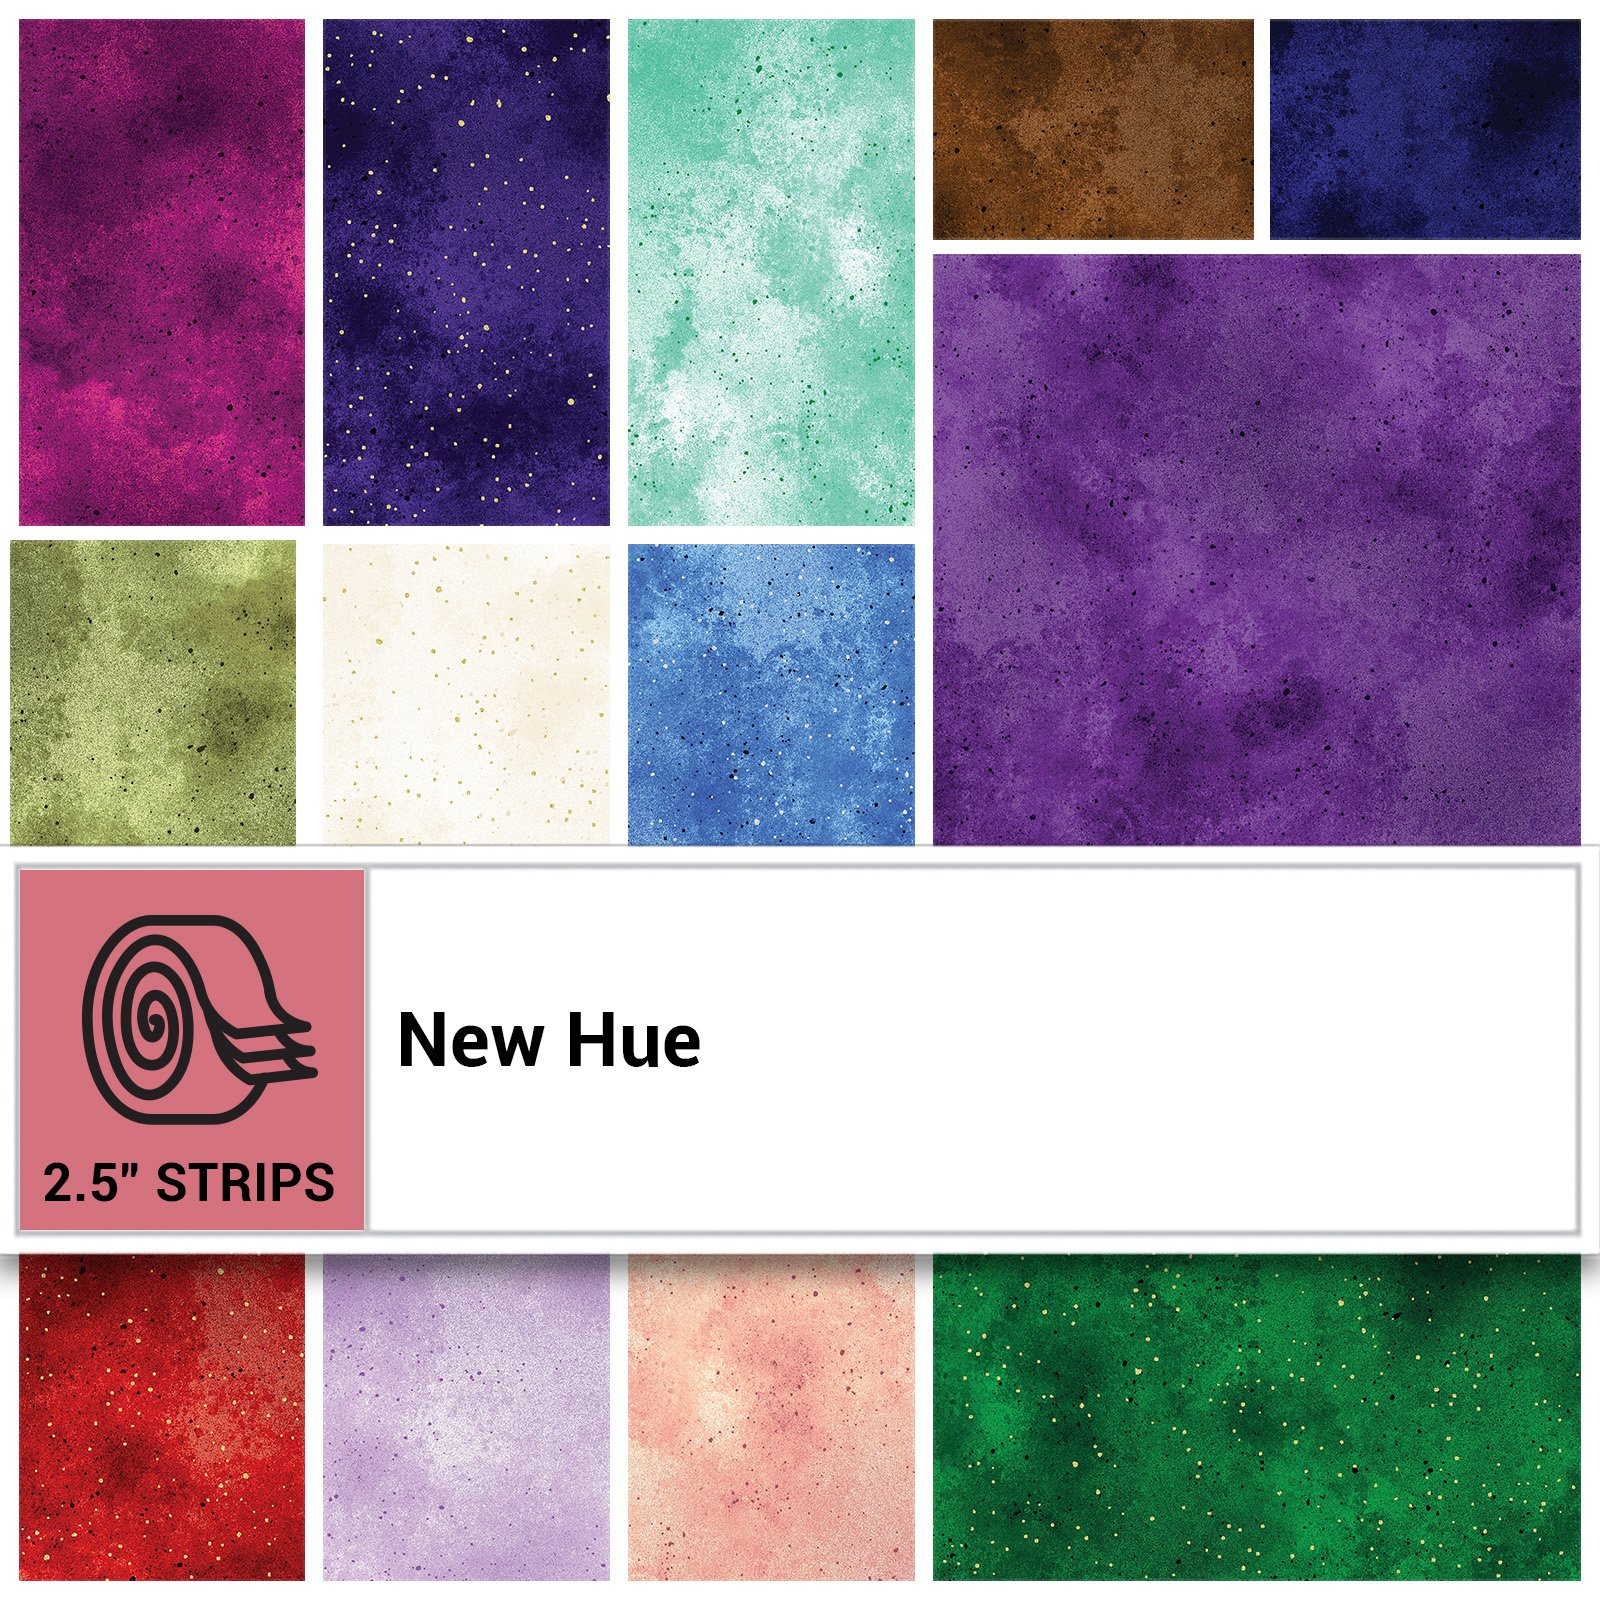 Strips - New Hue<br/>Kanvas Studio KASNEH